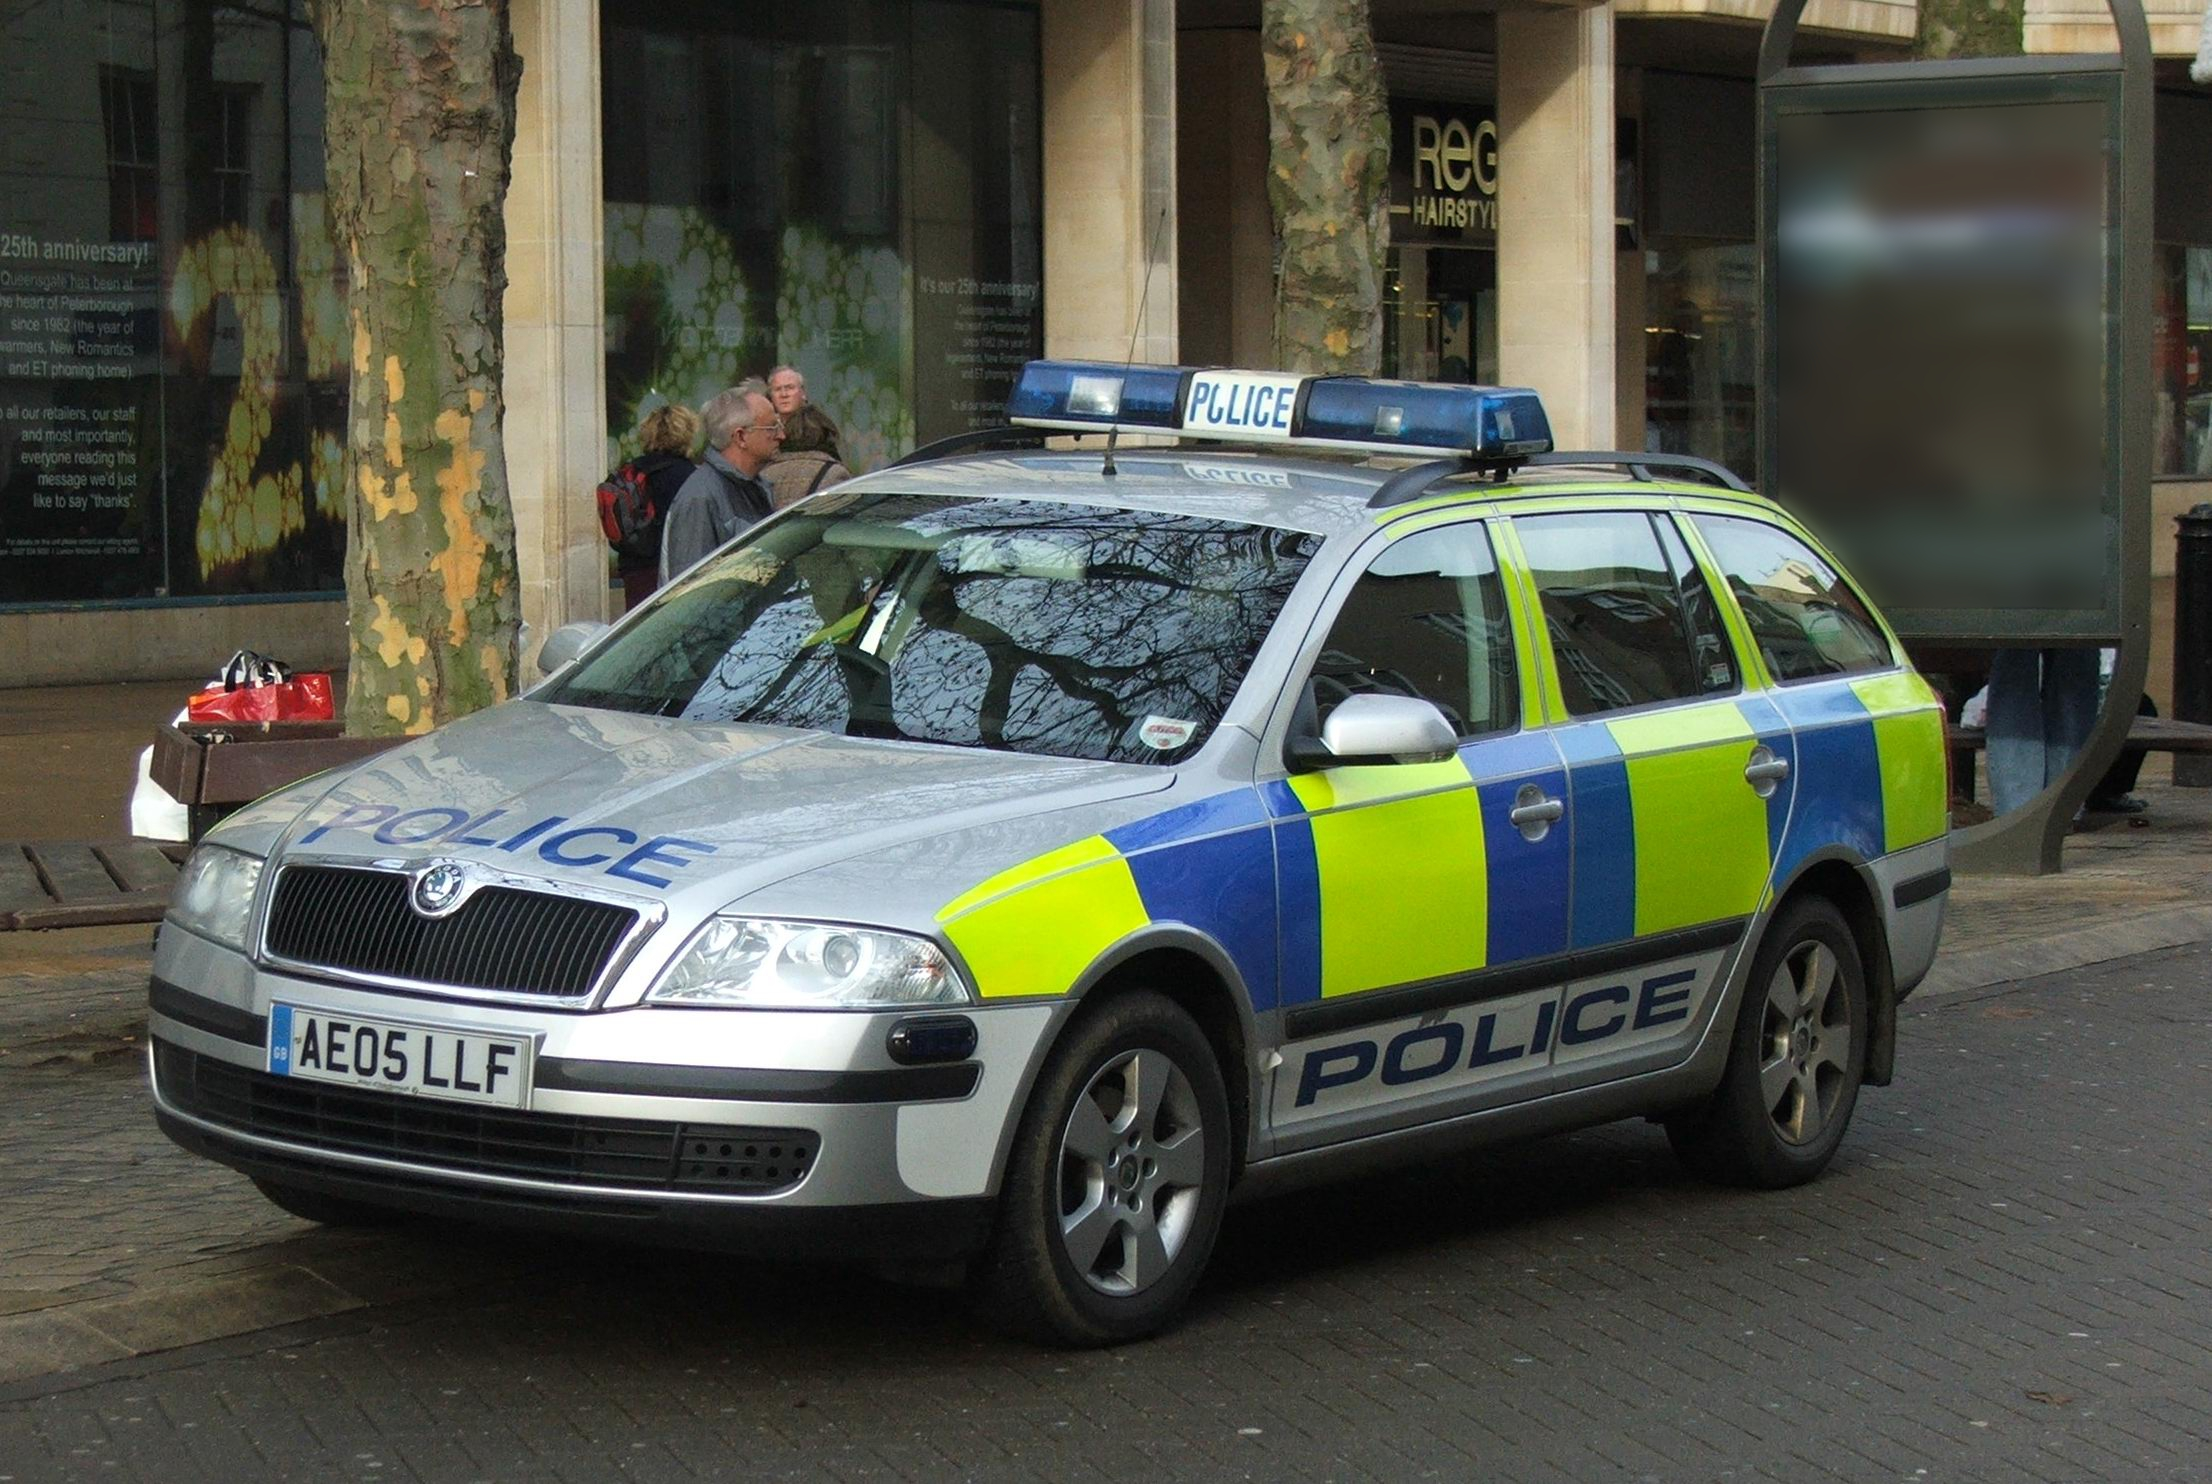 poll british police cars or american police cars yahoo. Black Bedroom Furniture Sets. Home Design Ideas